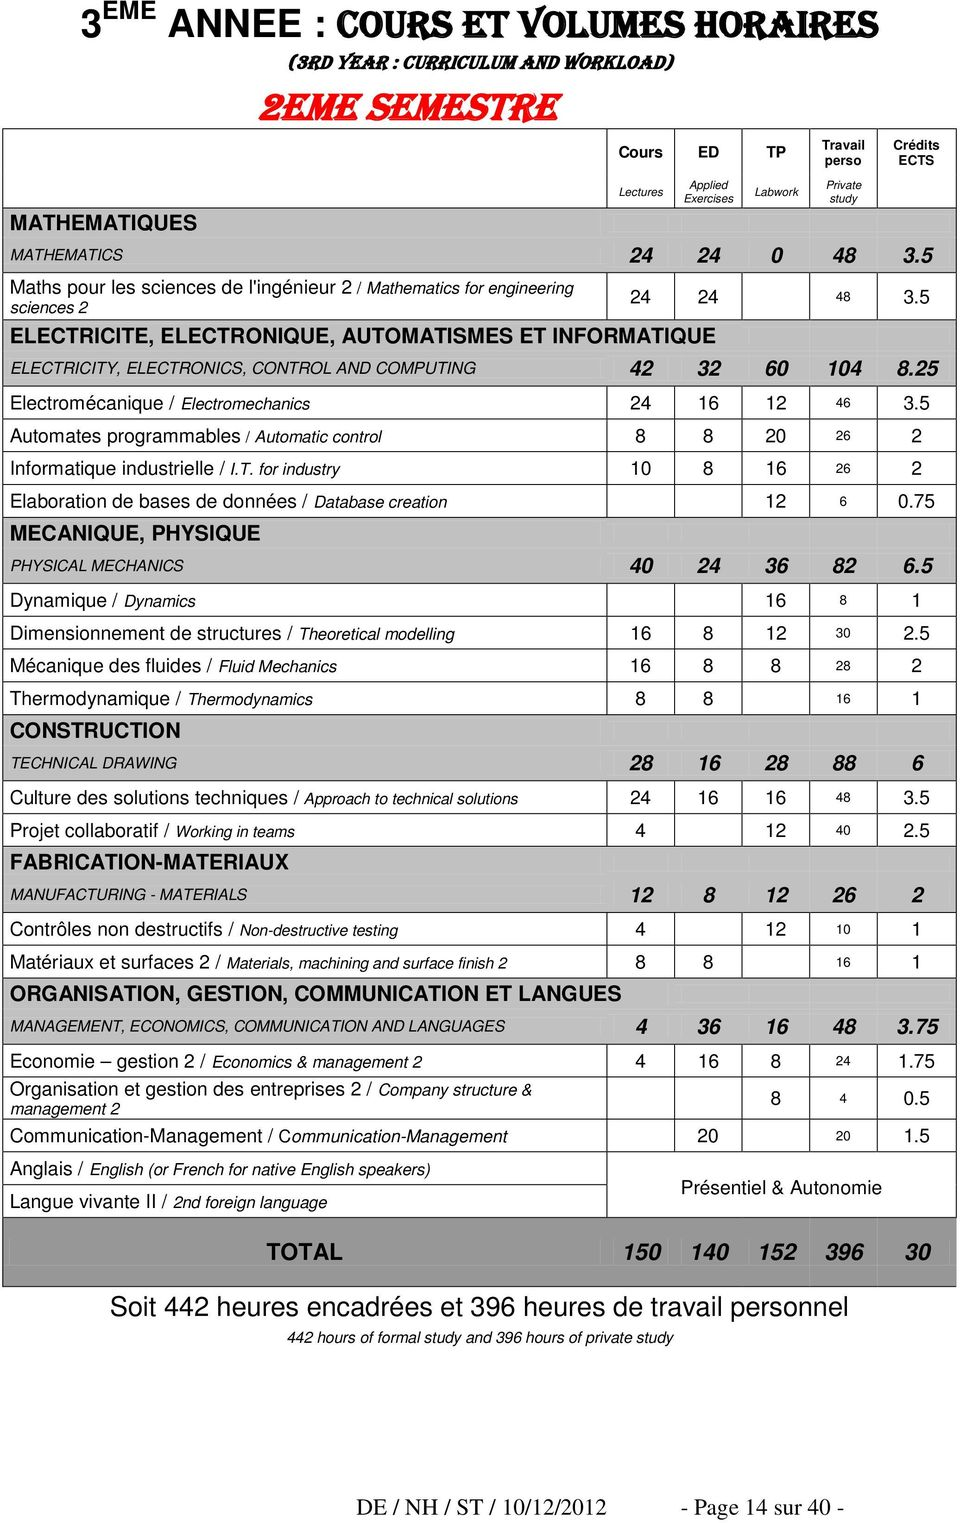 5 ELECTRICITY, ELECTRONICS, CONTROL AND COMPUTING 42 32 60 104 8.25 Electromécanique / Electromechanics 24 16 12 46 3.